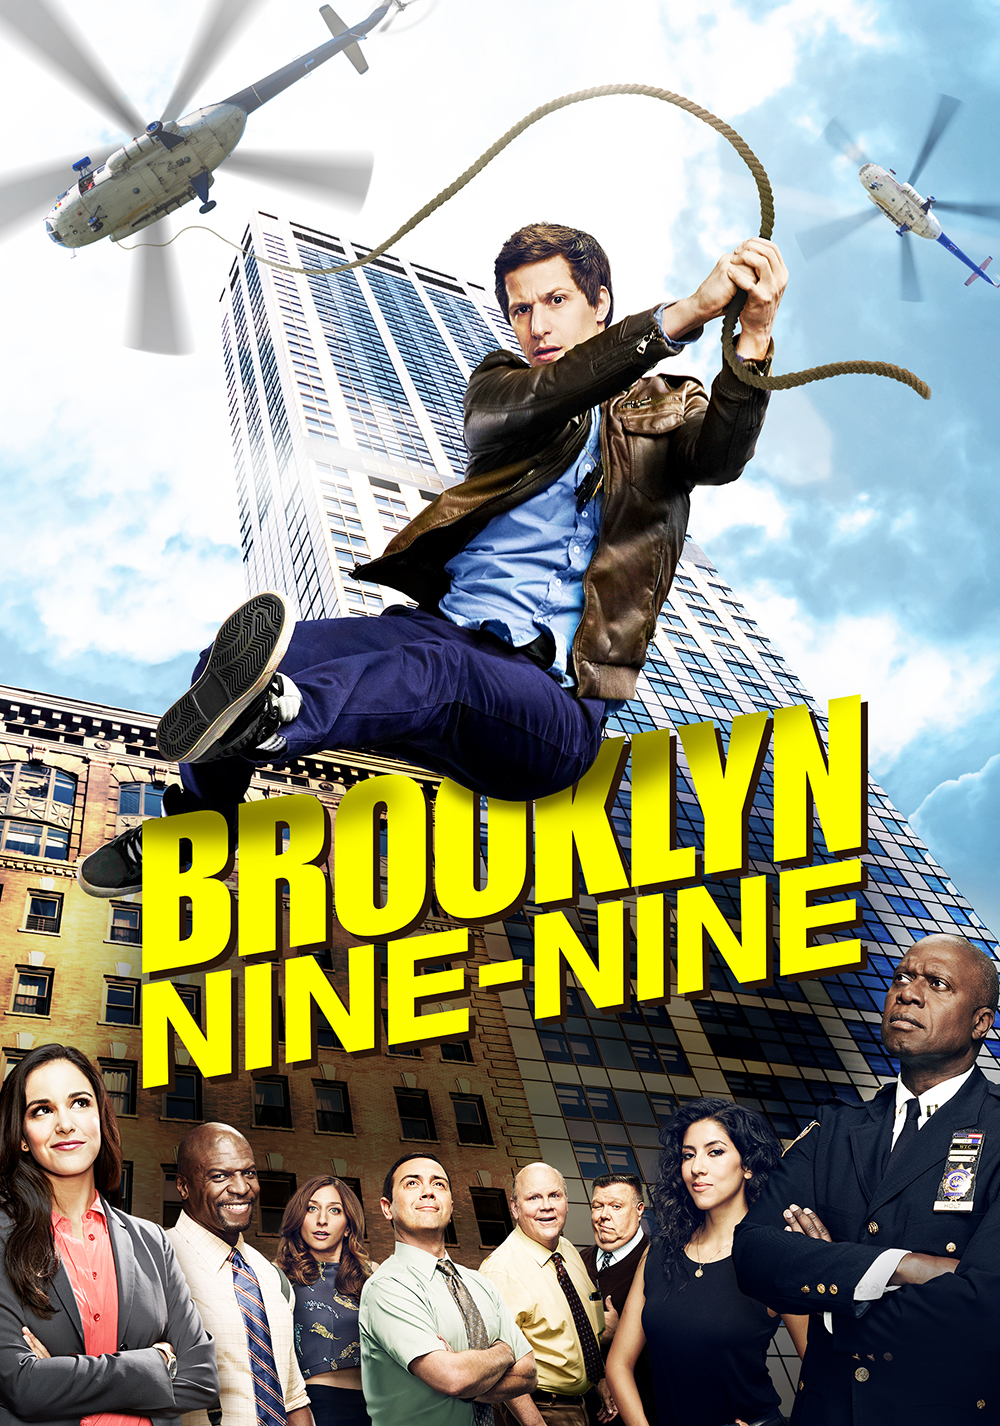 Brooklyn Nine-Nine (TV Series 2013– ) - IMDb